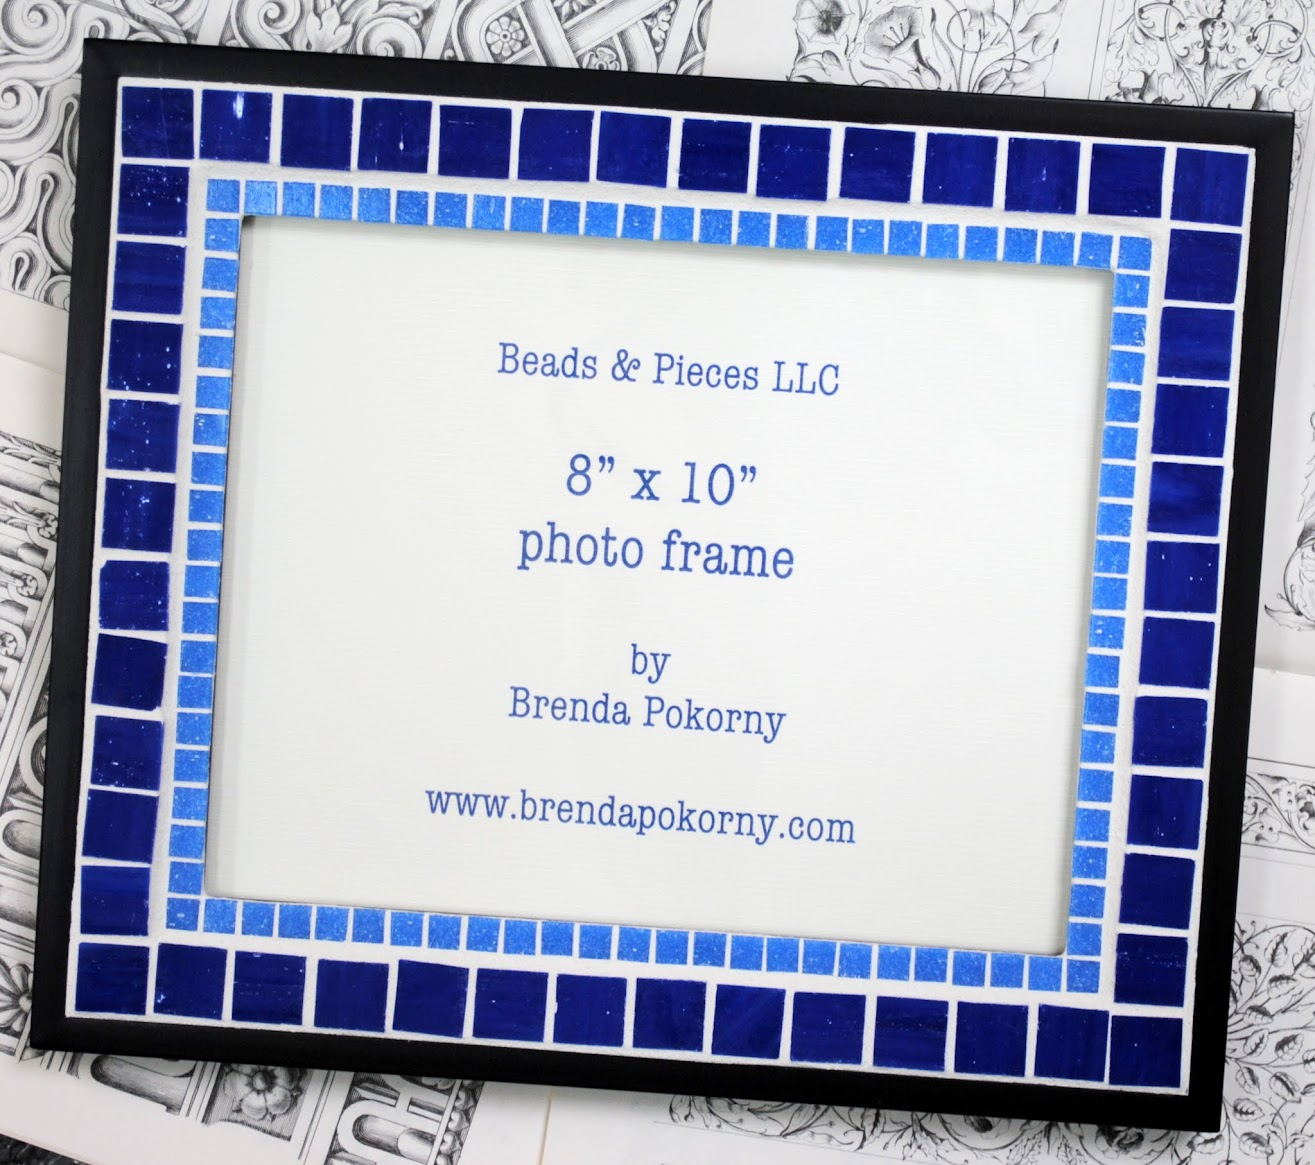 What Asian photo frame 8 x 10 can